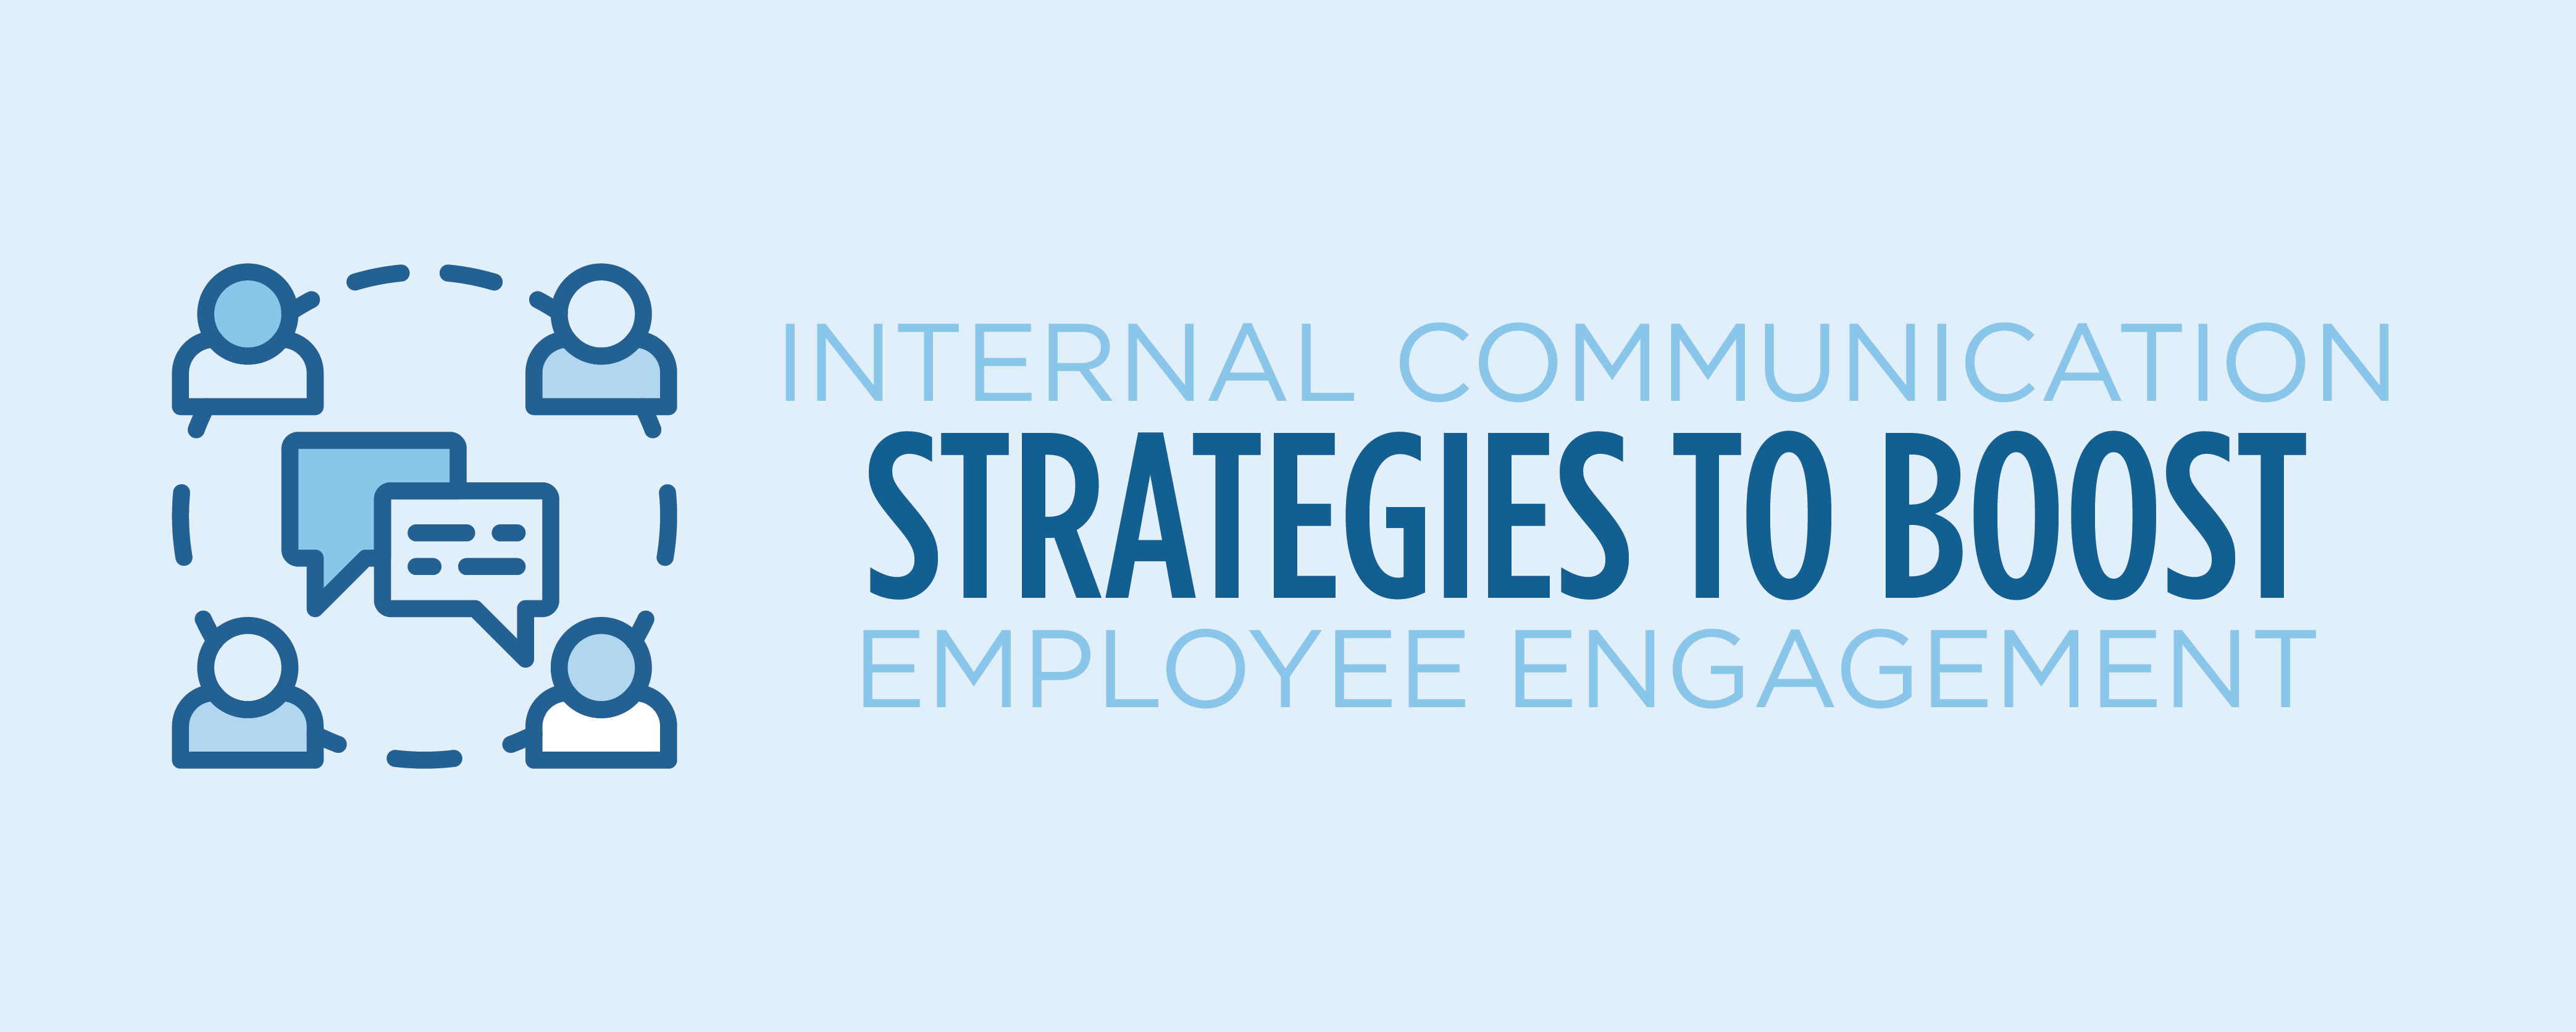 internal communication strategies to boost employee engagement